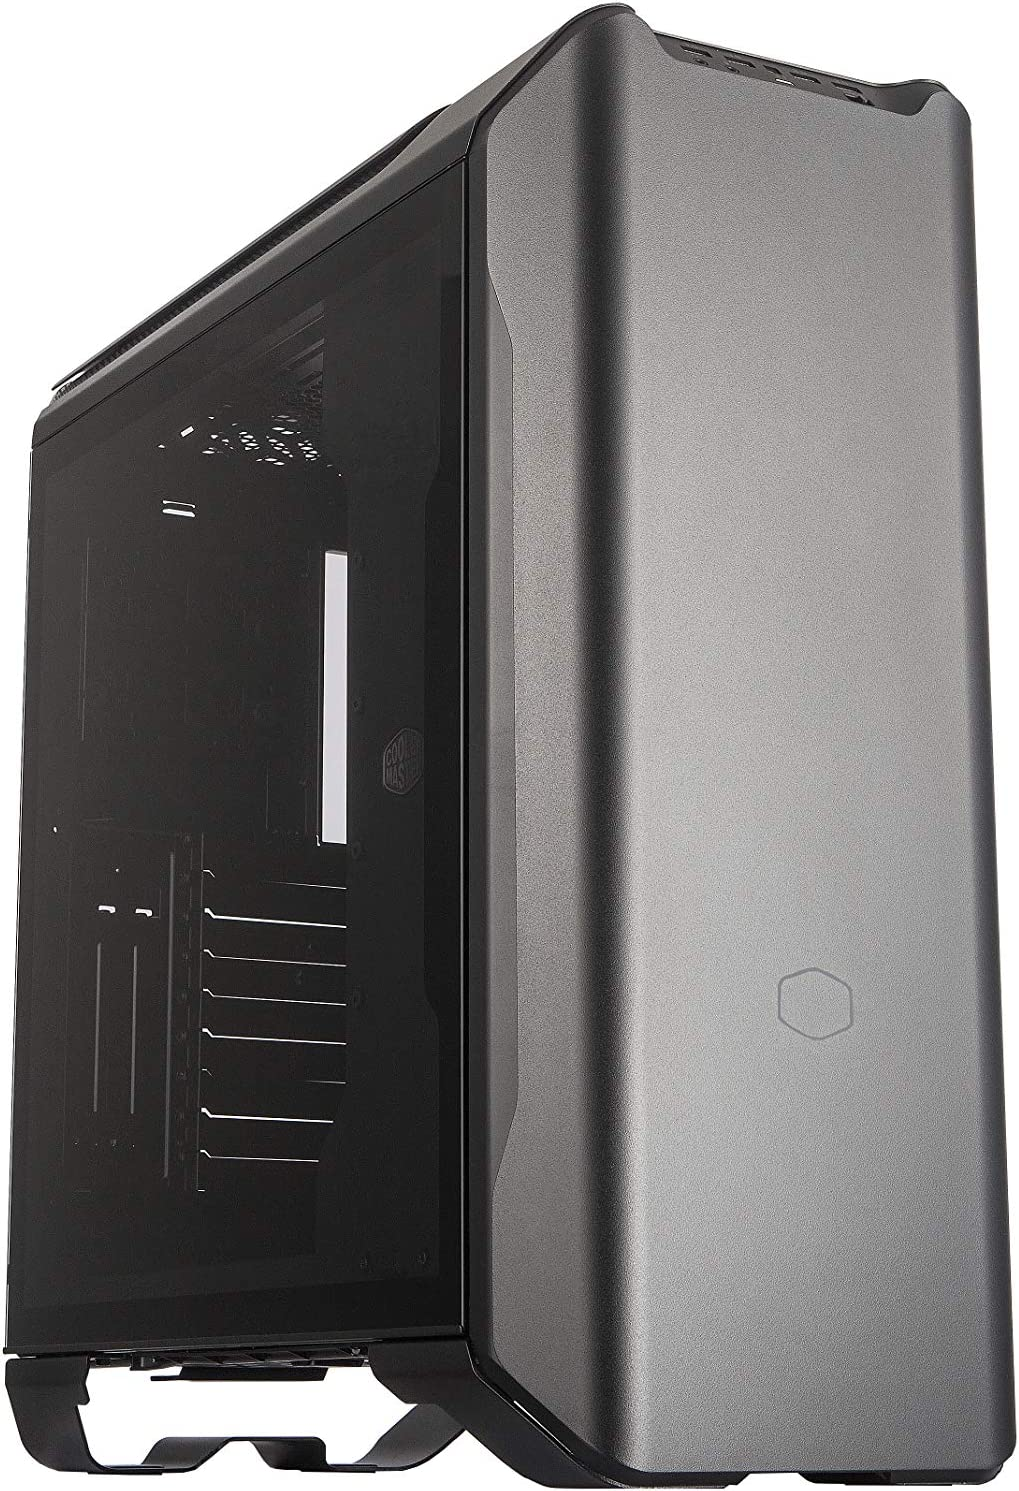 Cooler Master MasterCase SL600M Black Edition ATX Mid-Tower with Aluminum Panels, Vertical Chimney Layout, Type-C I/O Panel, Noise Reduction & Top Air Vents